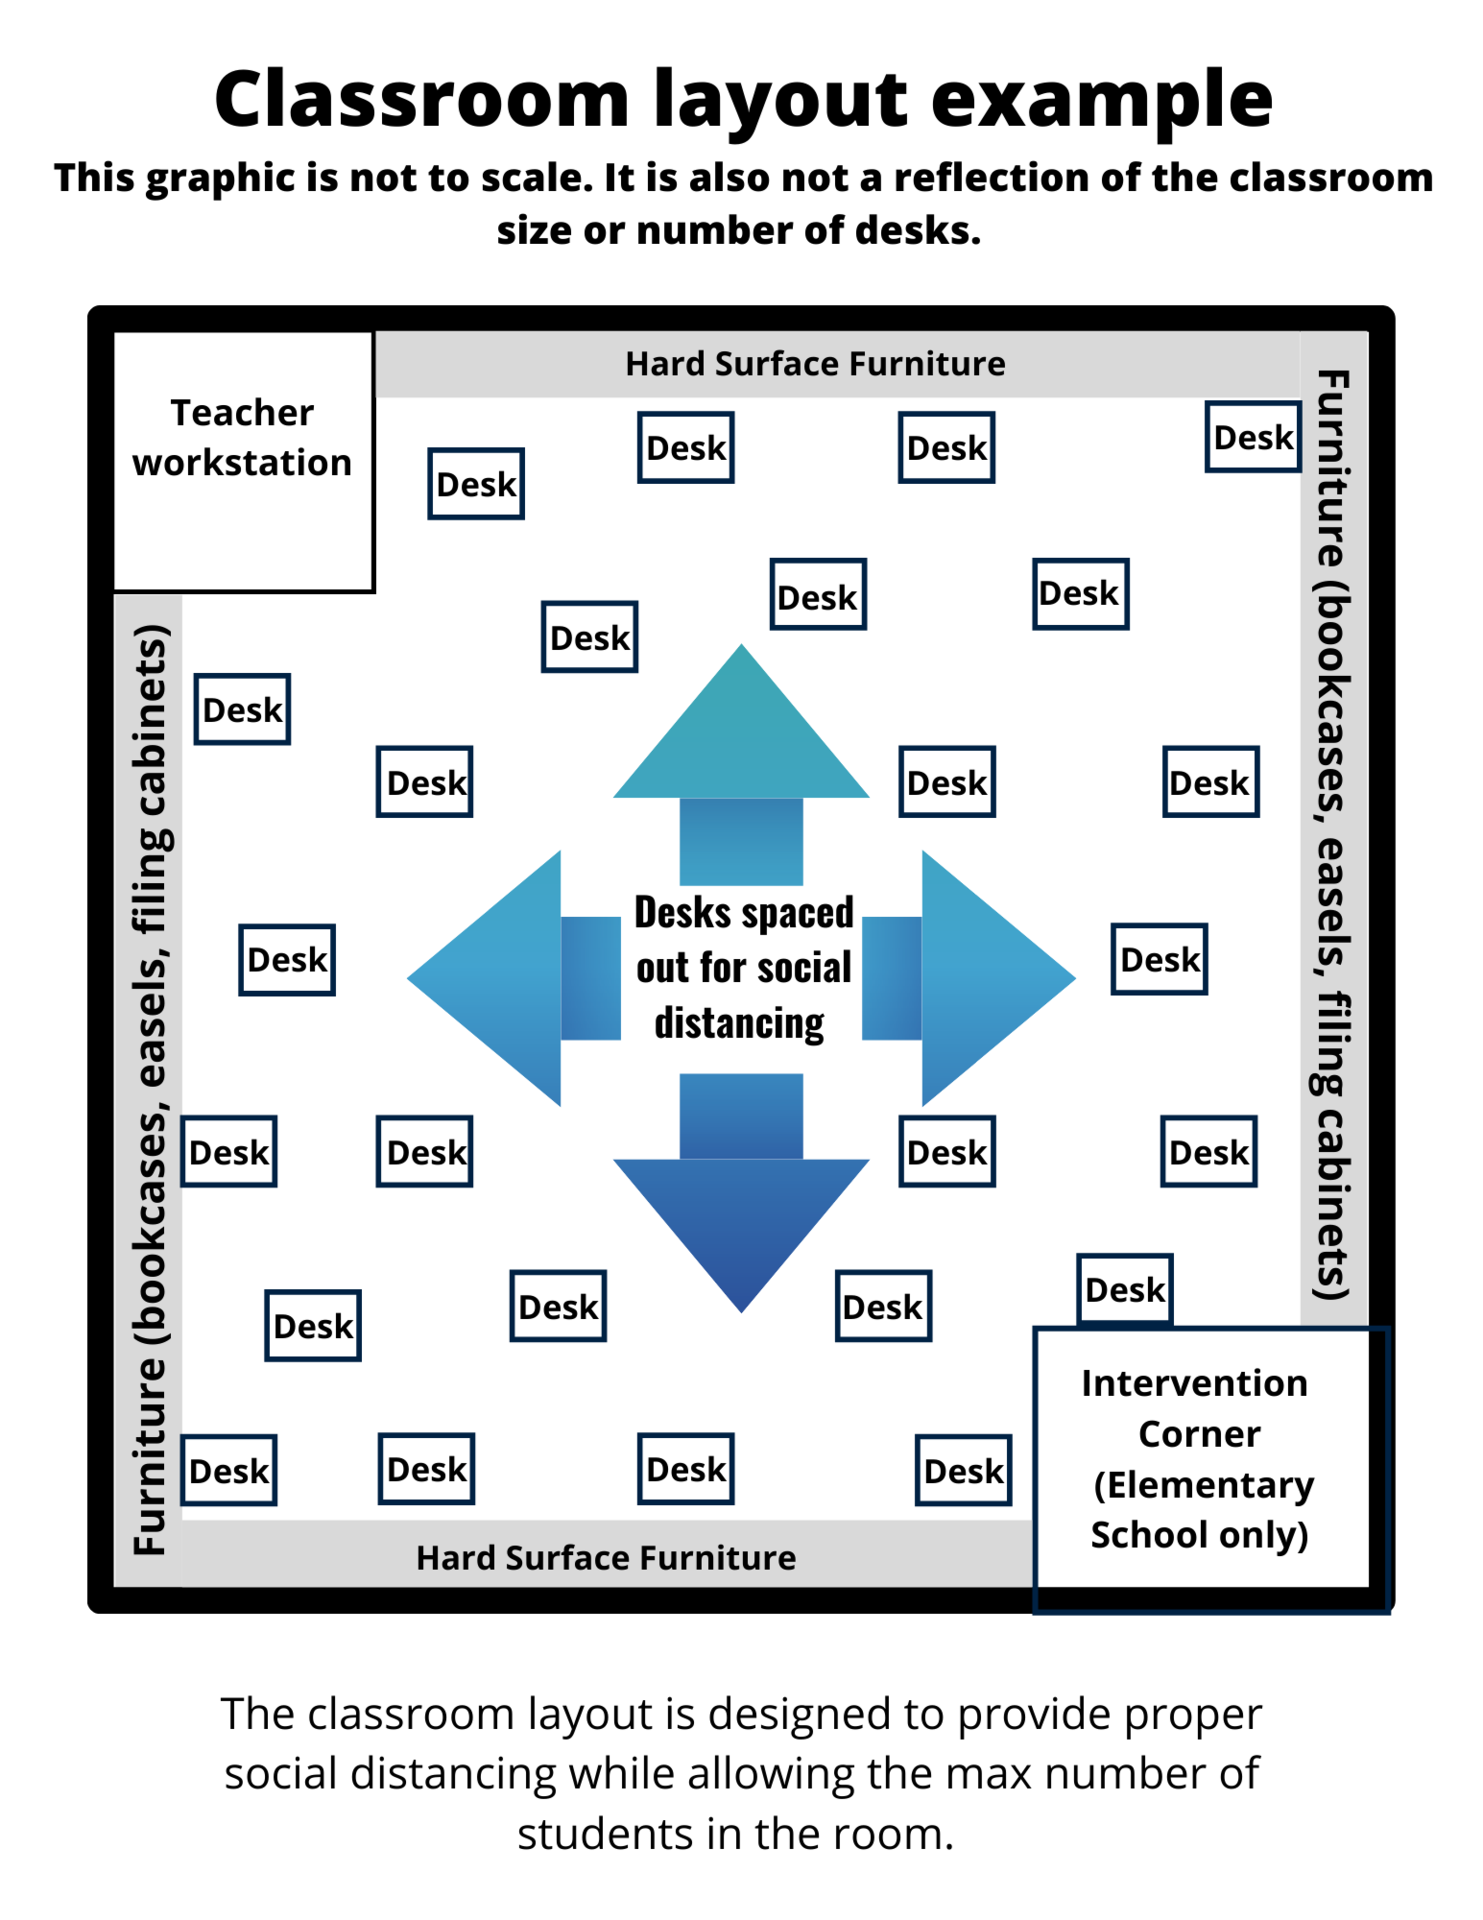 image of classroom layout